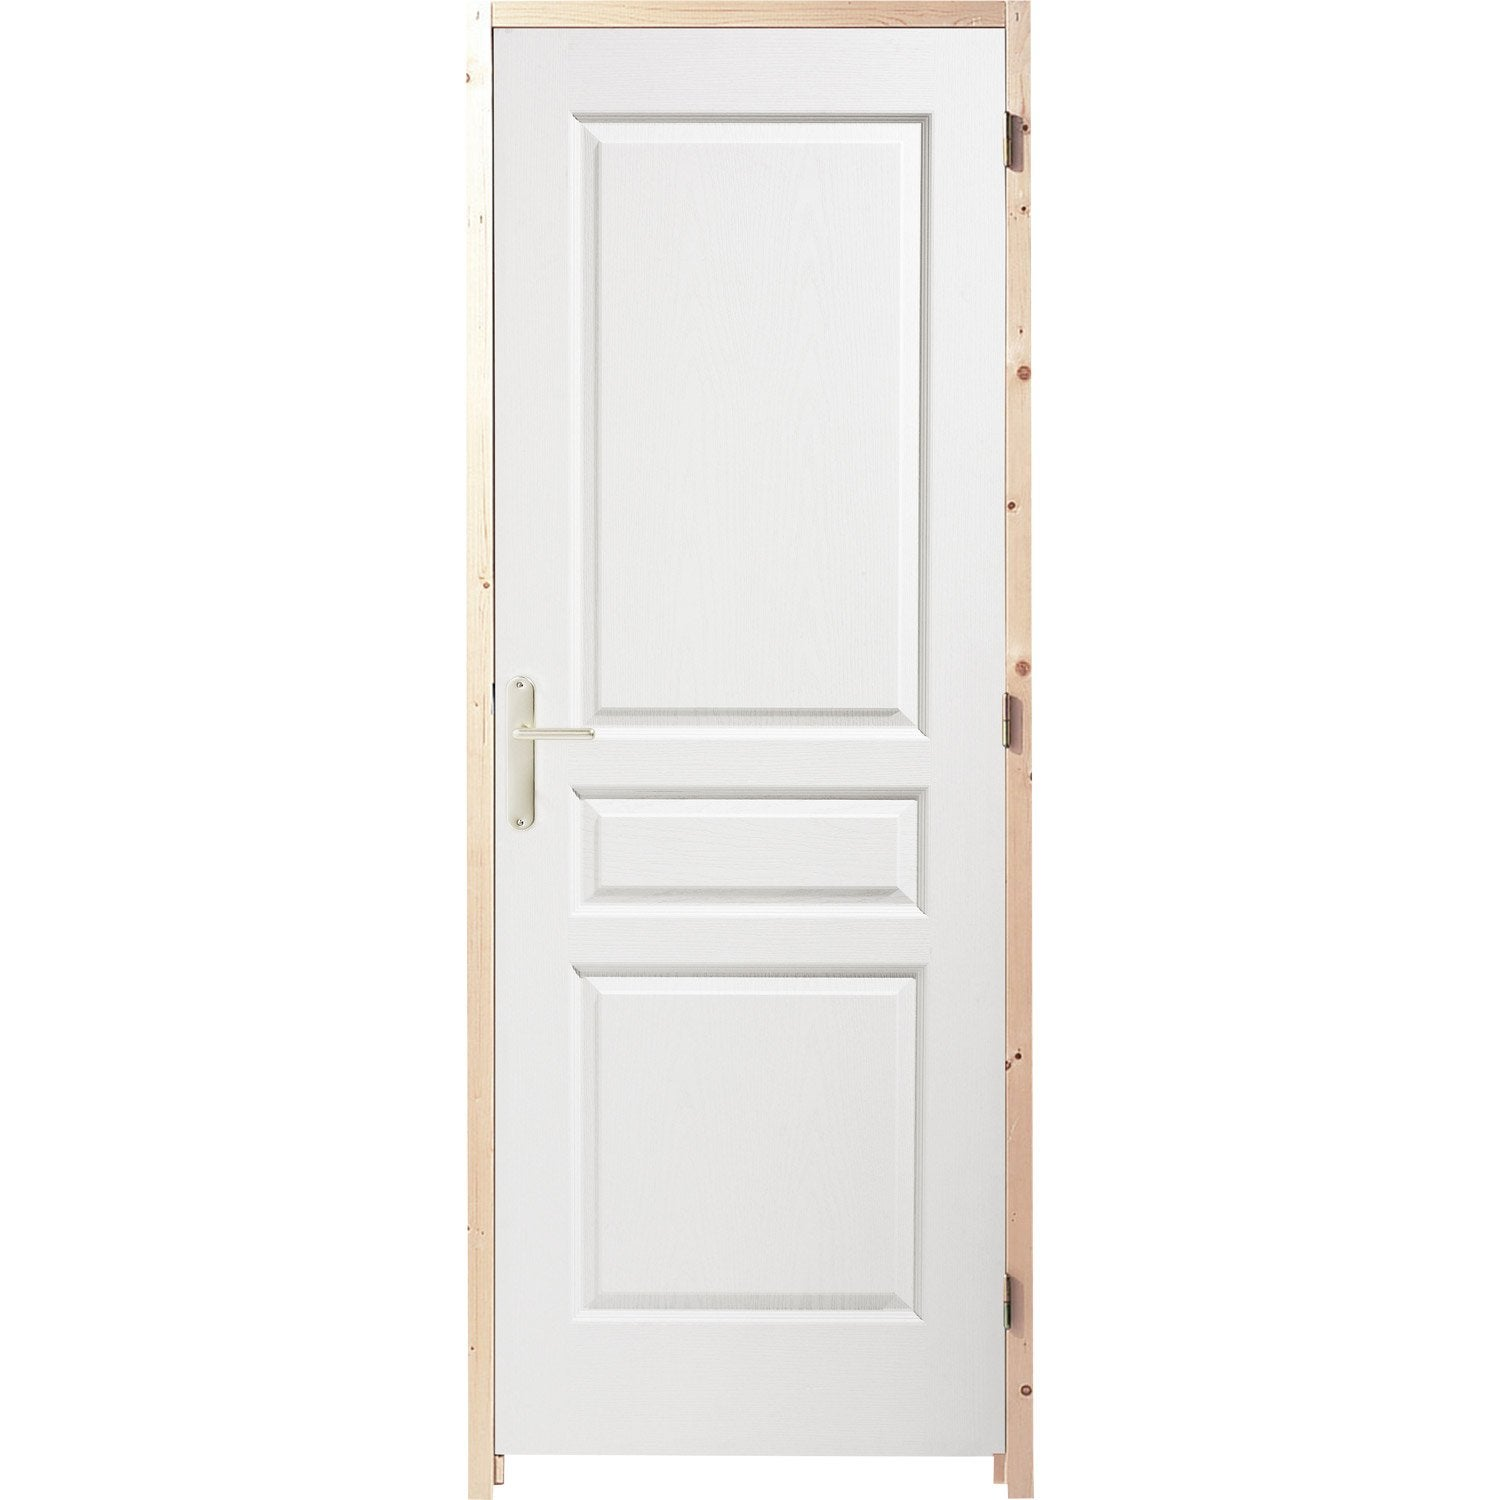 Bloc porte acoustique postform x cm leroy merlin - Porte renovation leroy merlin ...